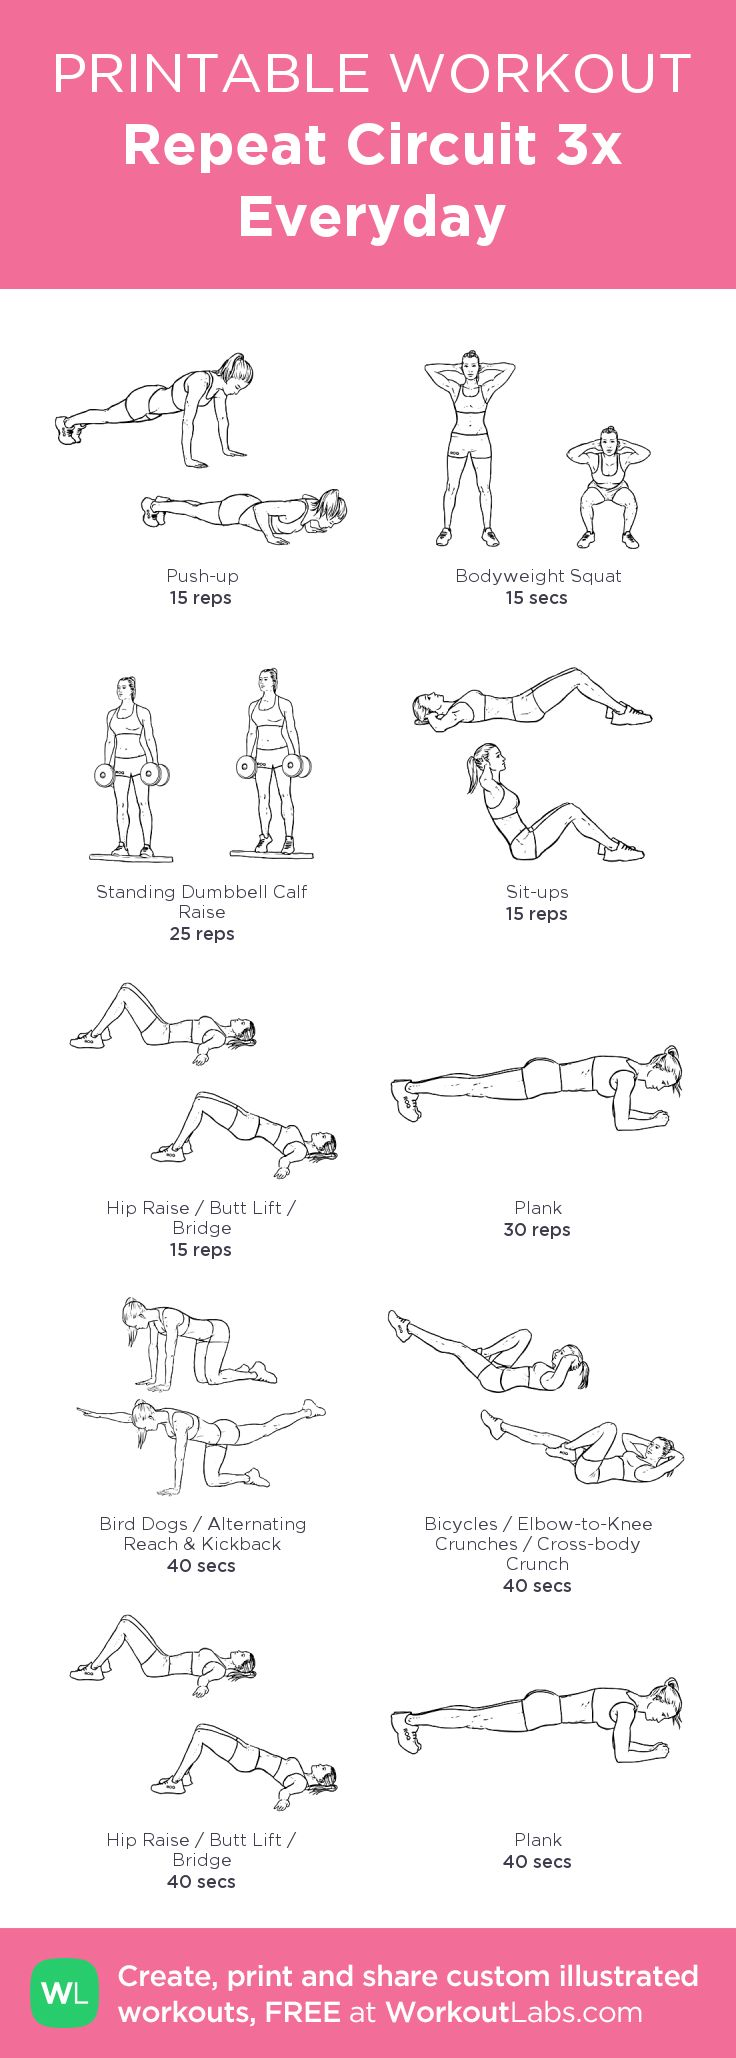 Repeat Circuit 3x Everyday:my visual workout created at WorkoutLabs.com • Click through to customize and download as a FREE PDF! #customworkout